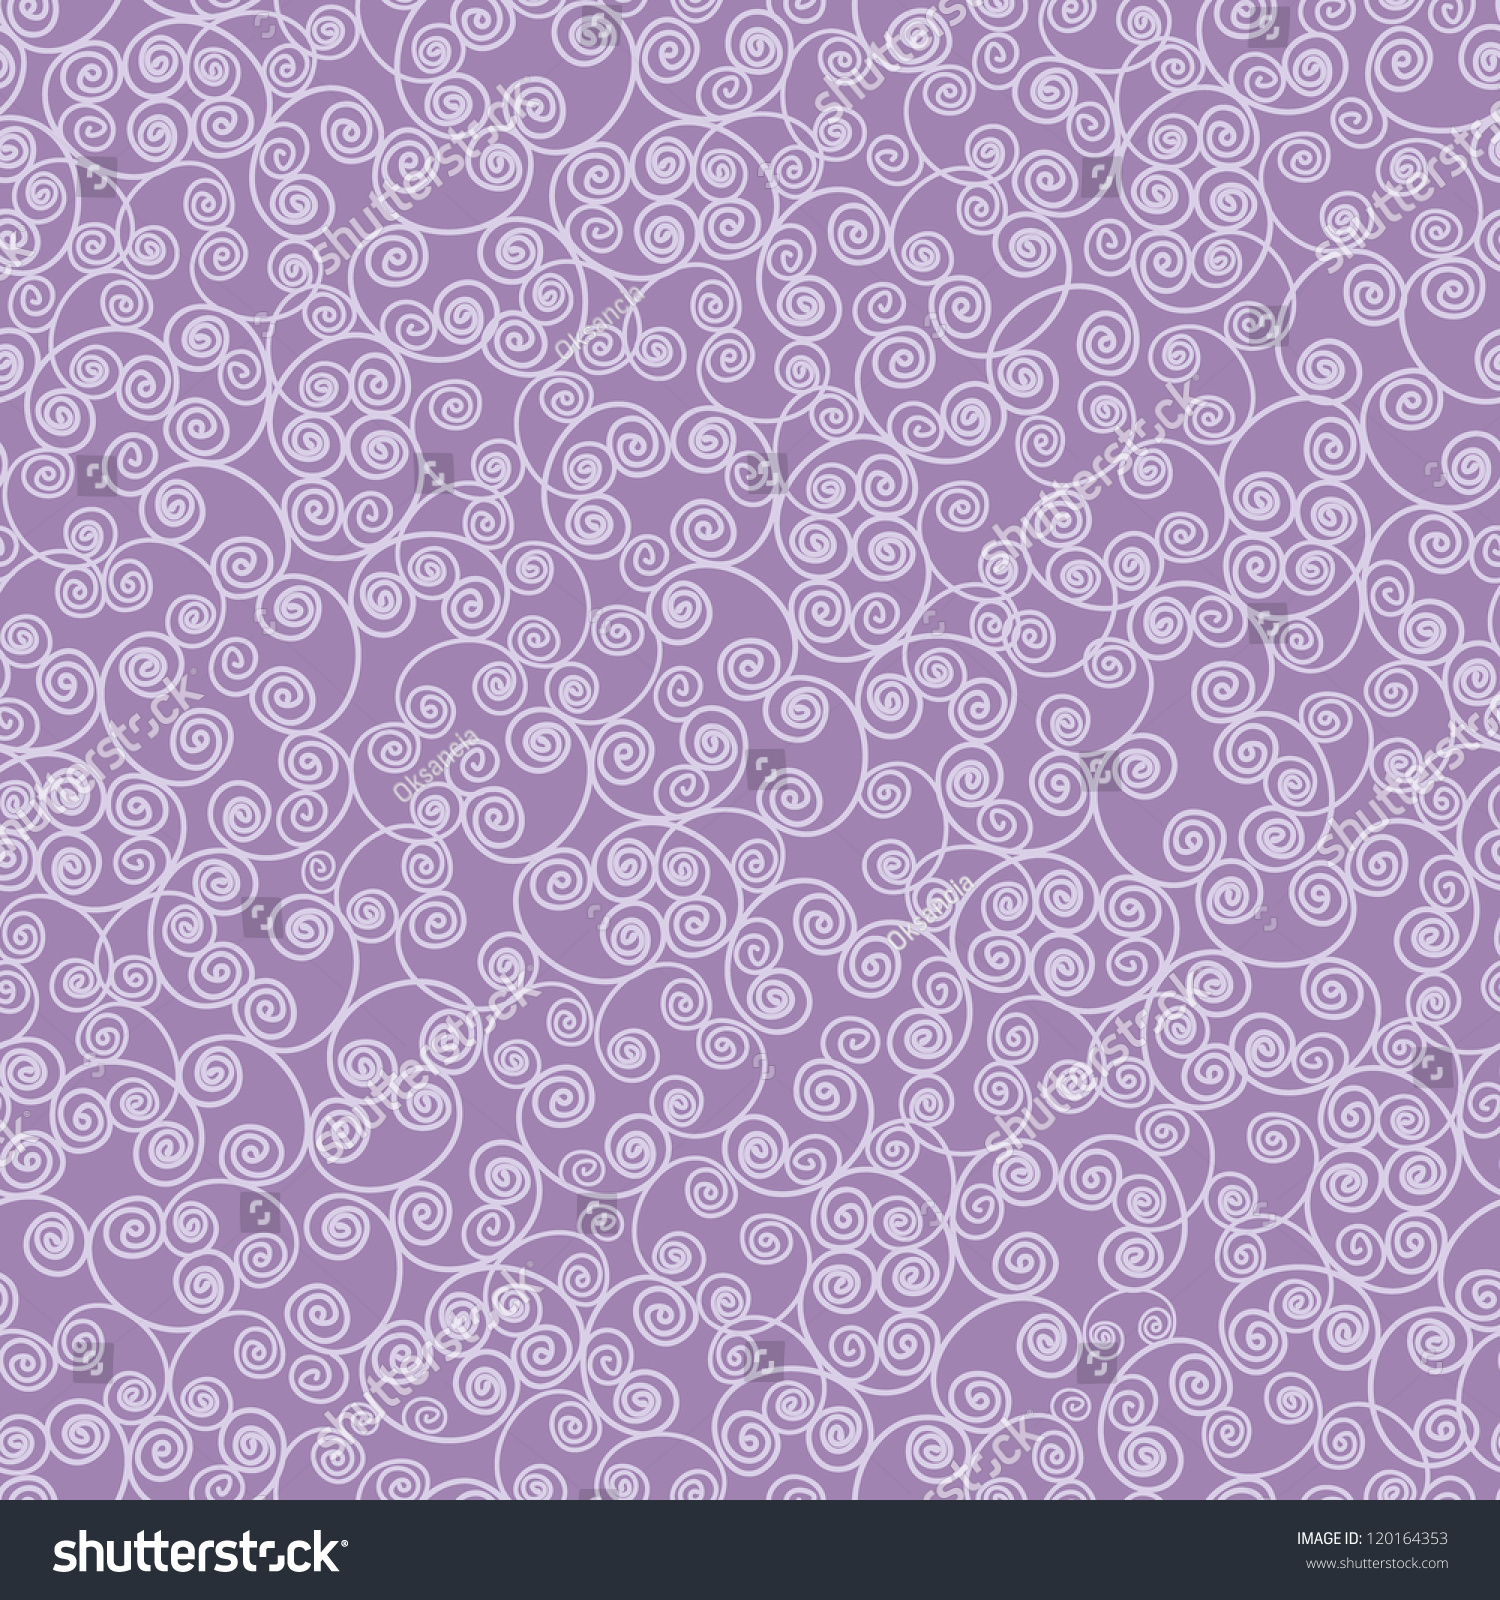 purple swirl background stock - photo #18